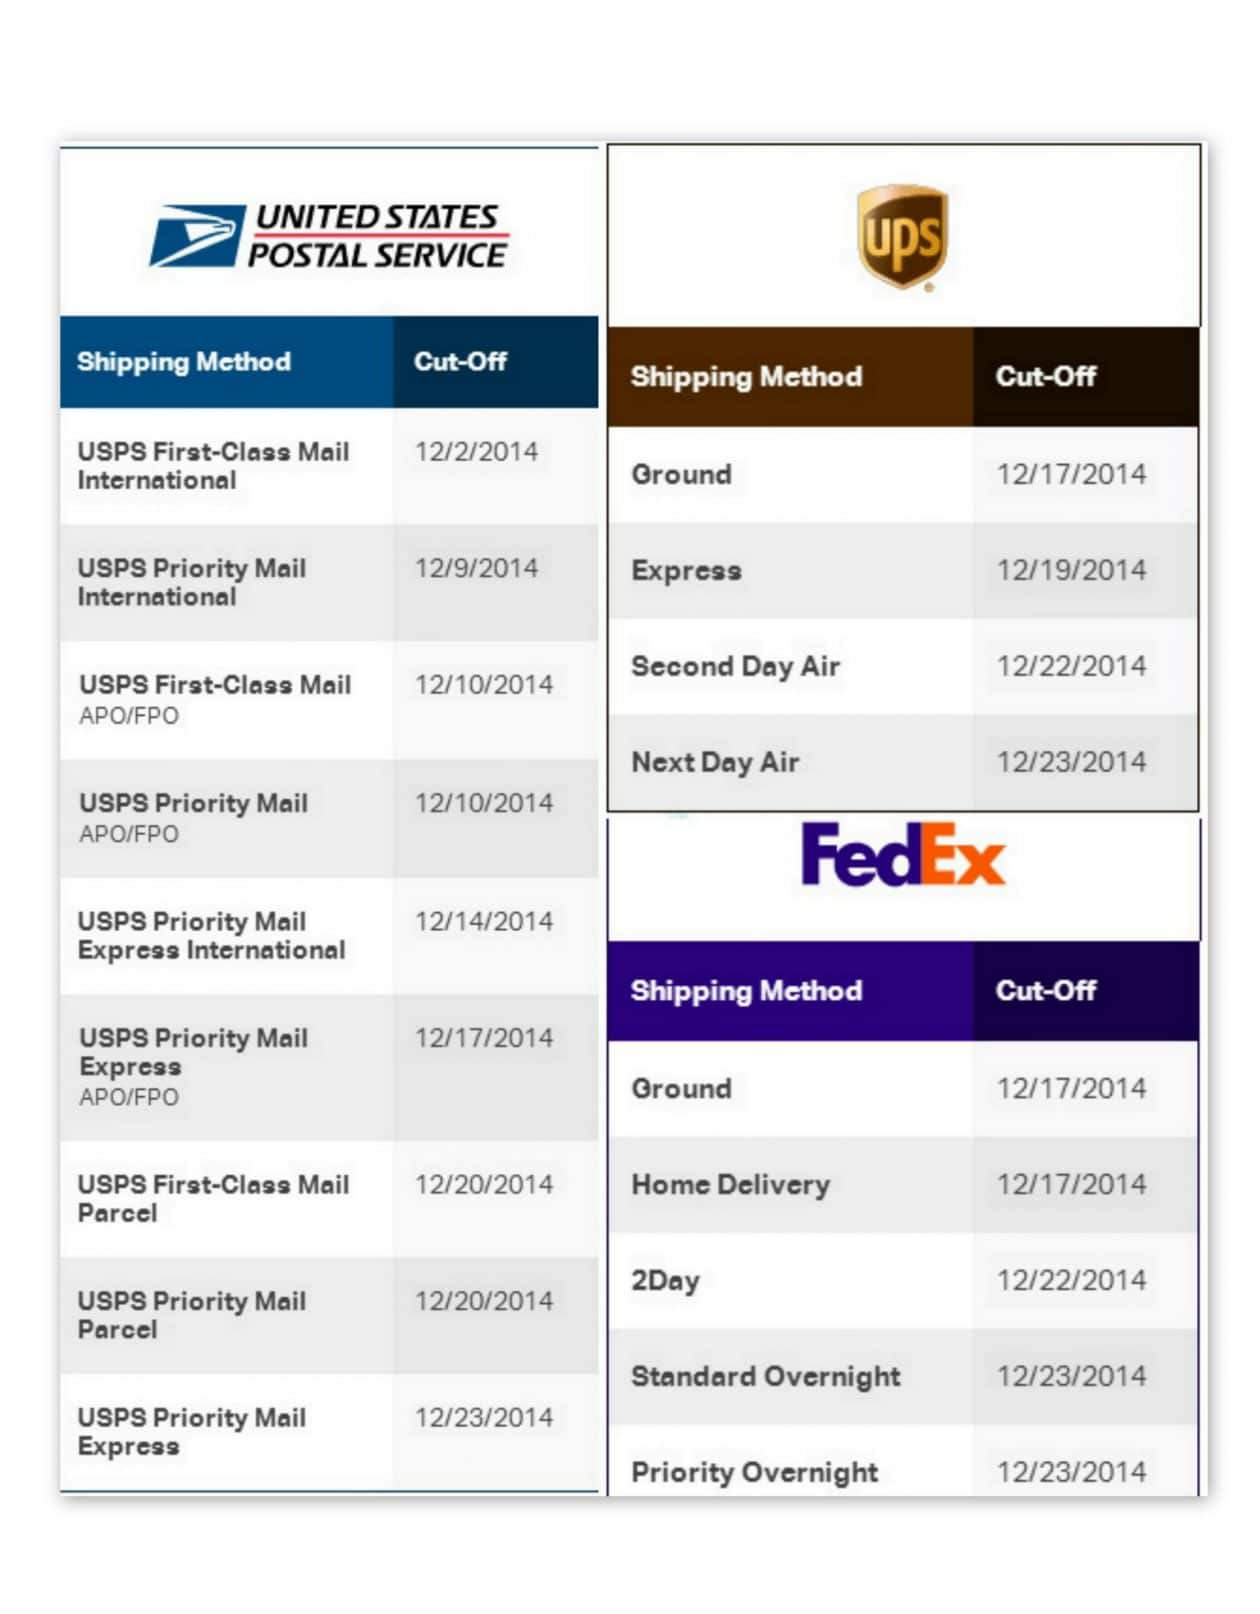 Important Holiday Shipping Cutoff Dates for Holiday 2014